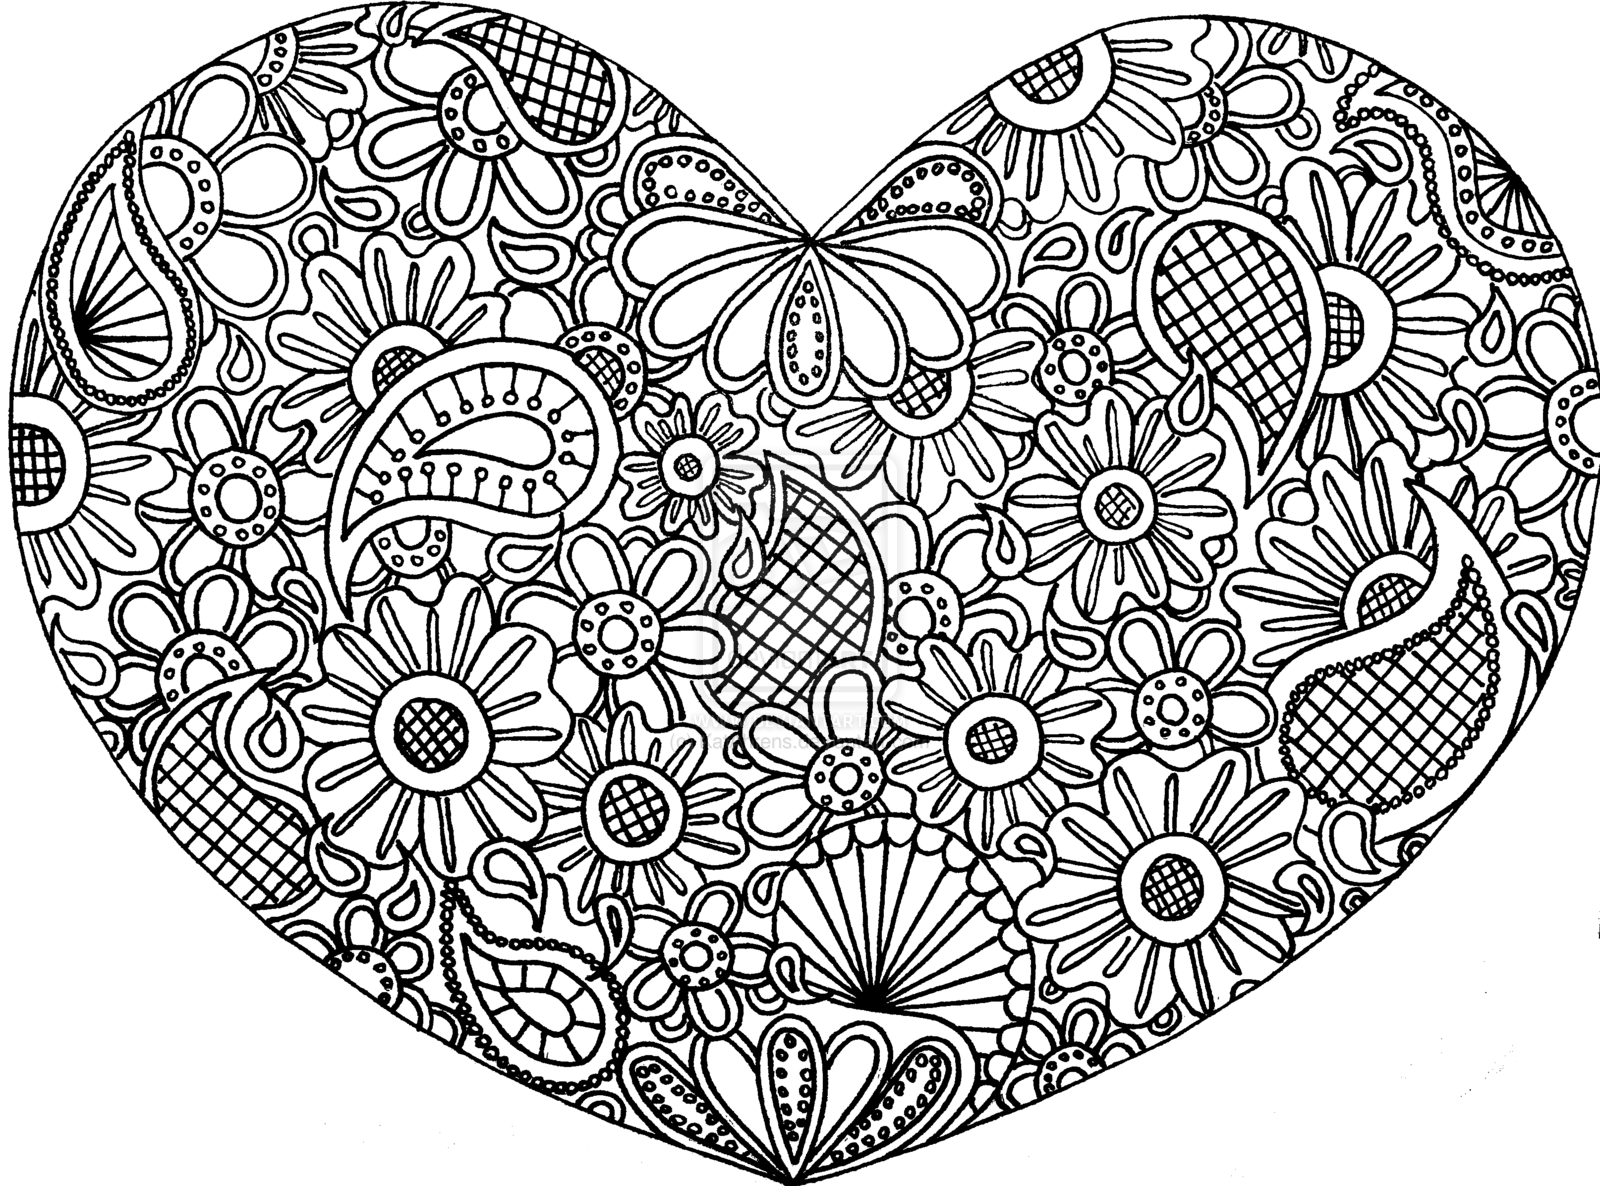 free doodle art to print and color abstract doodle coloring page free printable coloring pages and doodle to color free art print